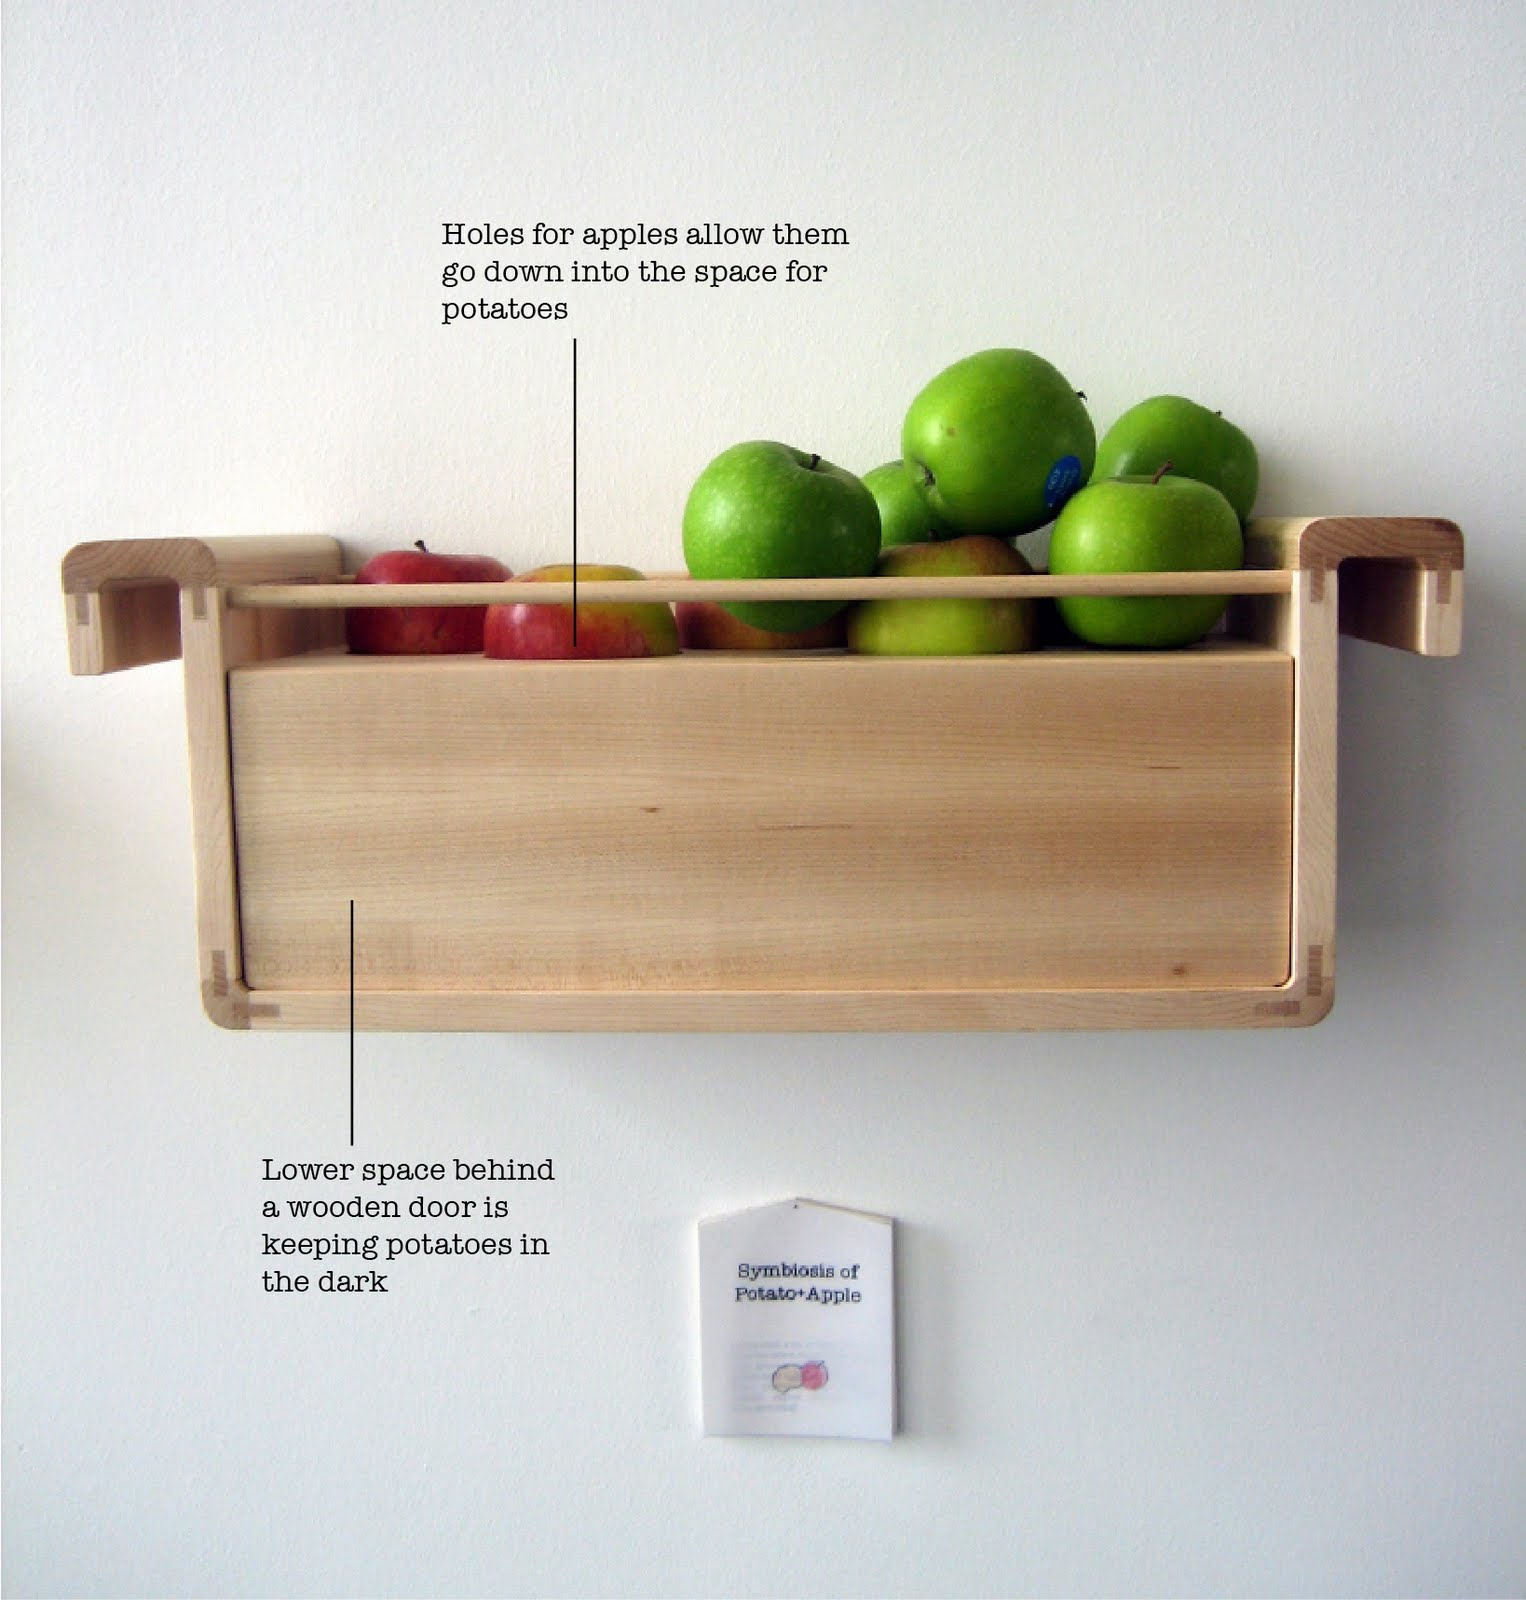 Rethinking the Refrigerator: How to use nature to store food and save money